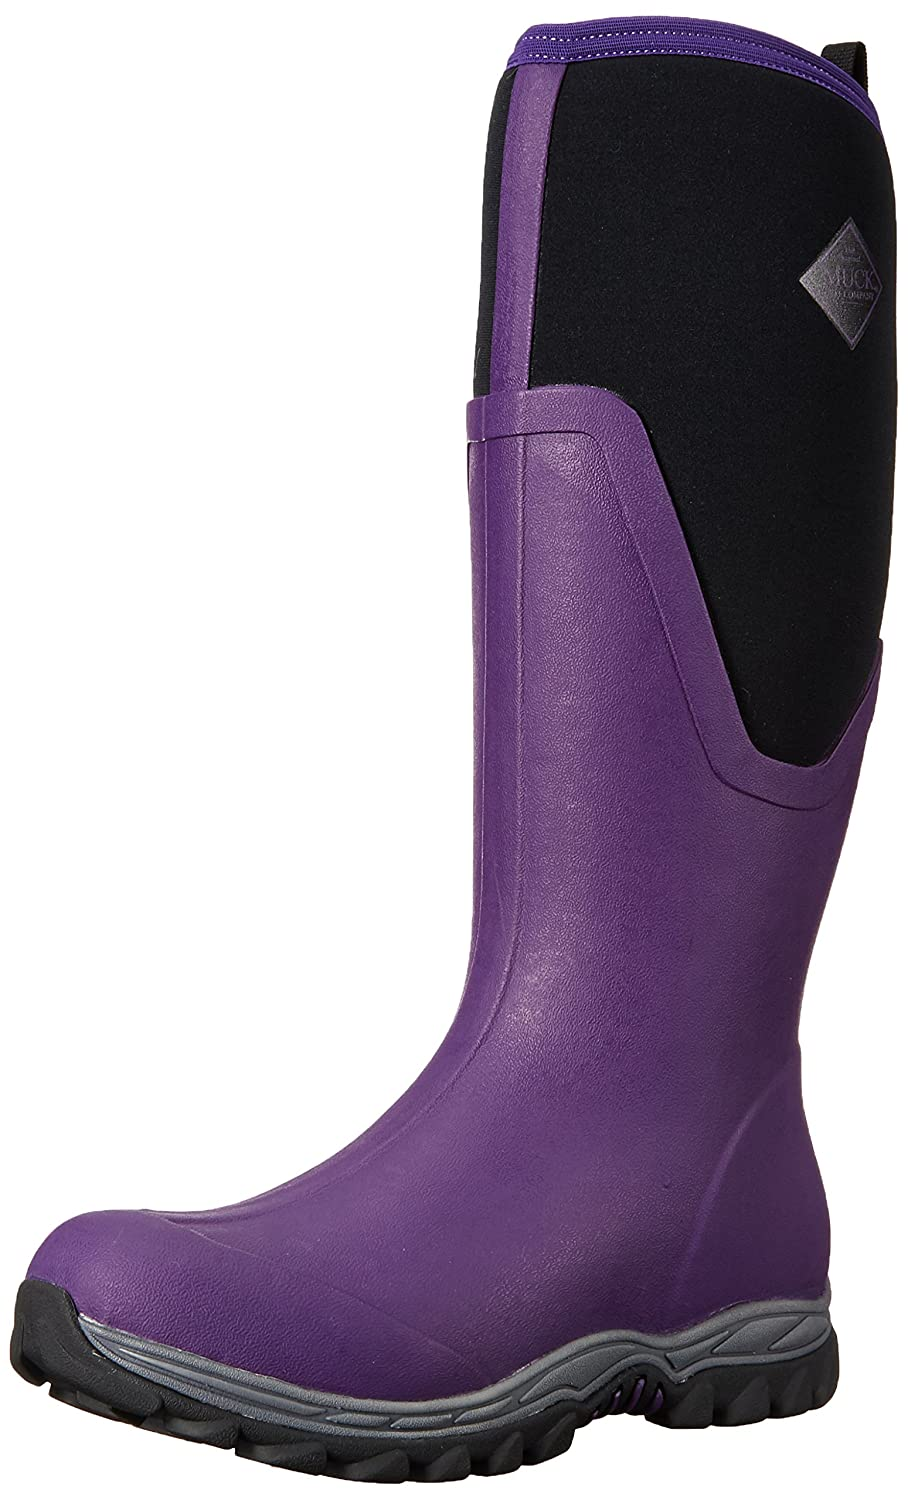 Muck Boots Arctic Sport Ll Extreme Conditions Tall Rubber Women's Winter Boot AS2T-500